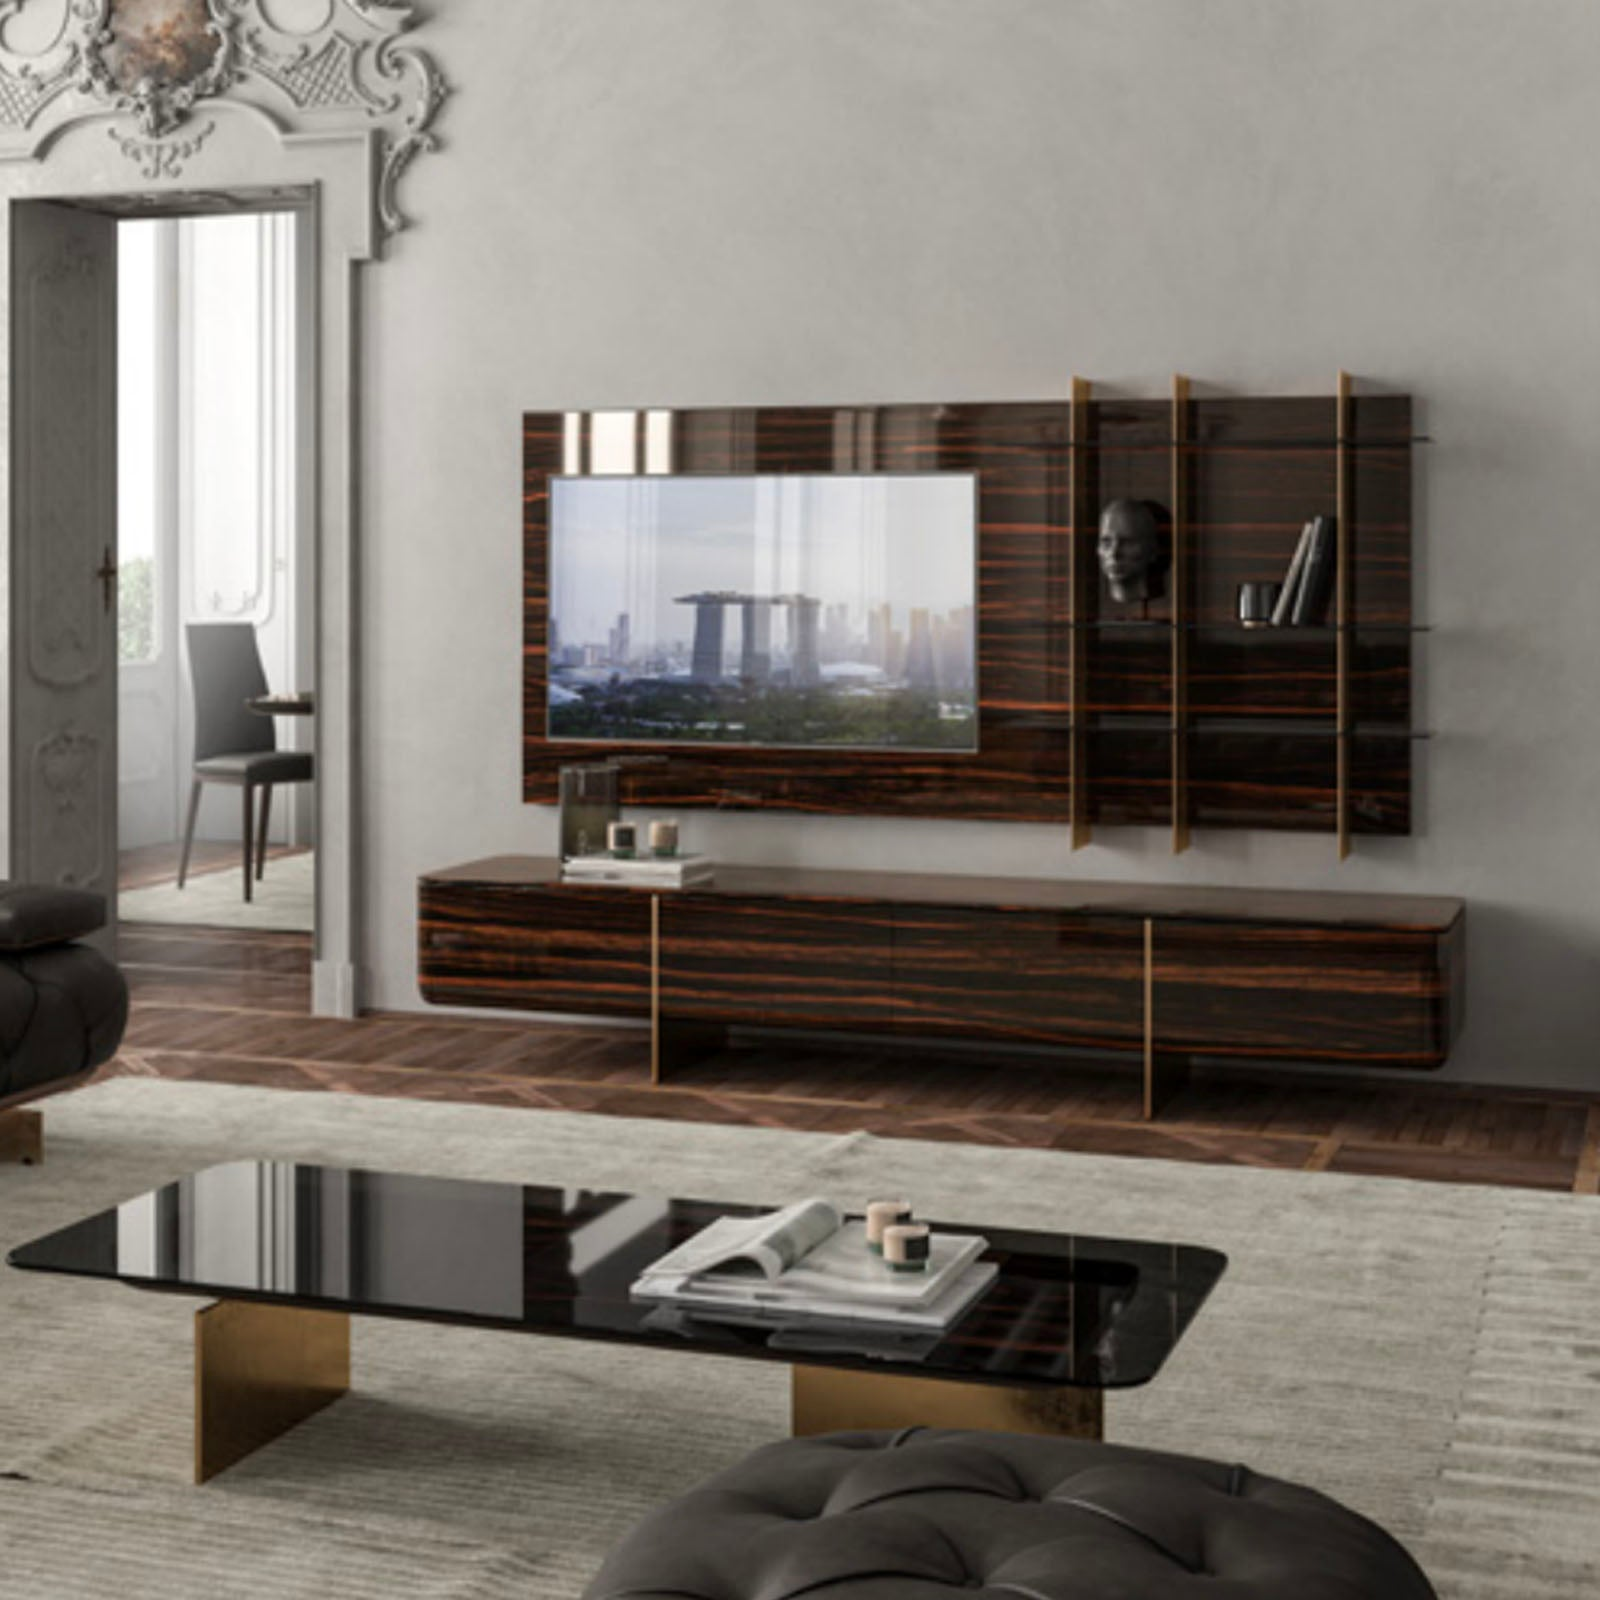 ARPAGE  TV unit  ARPAGE-TV -  طاولة تلفزيون أرباجي - Shop Online Furniture and Home Decor Store in Dubai, UAE at ebarza